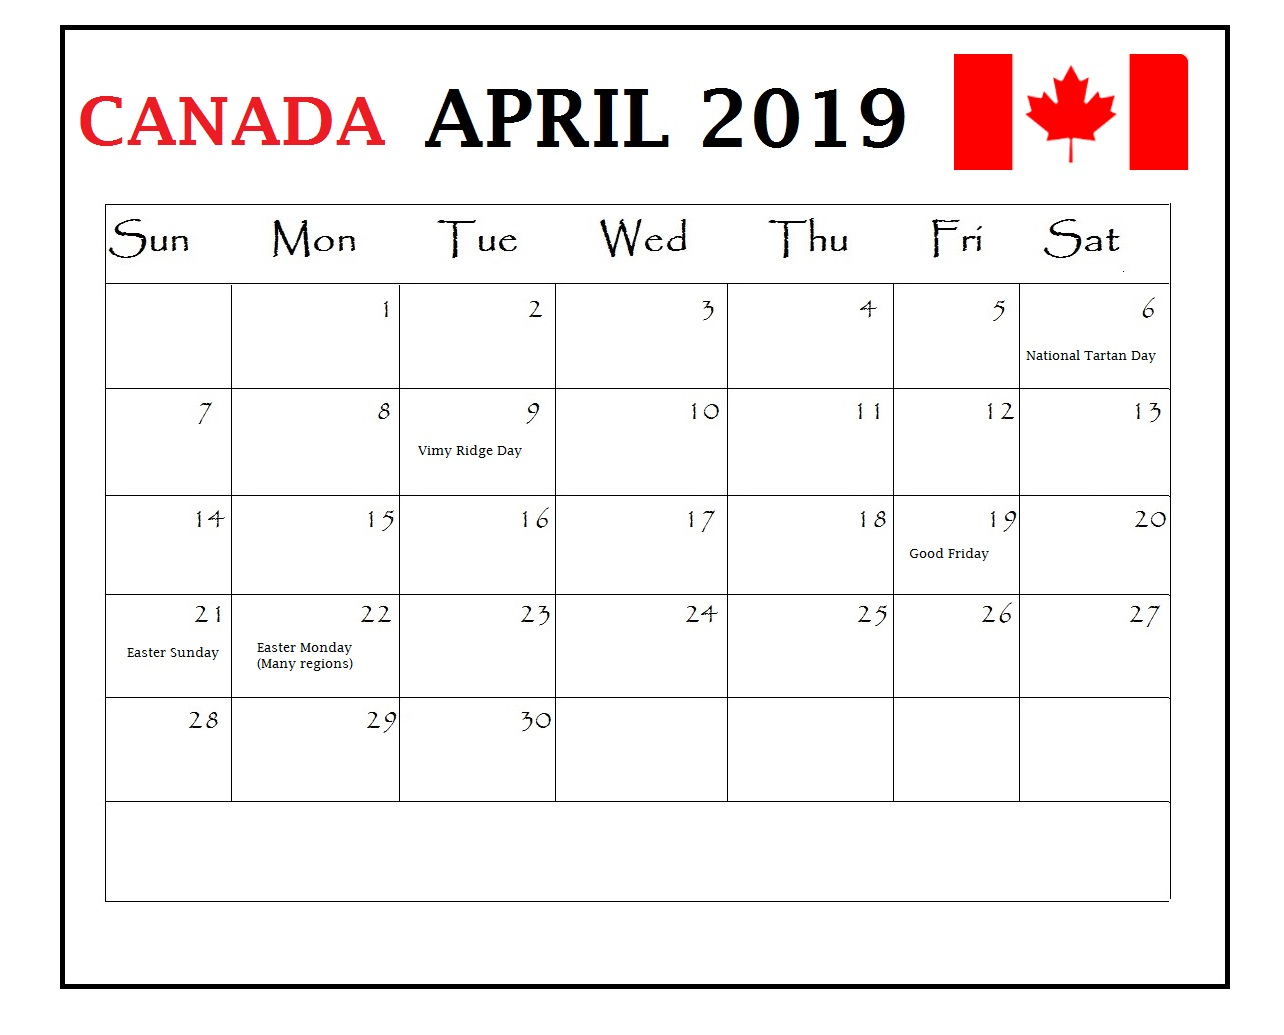 April 2019 Canada Holidays Calendar